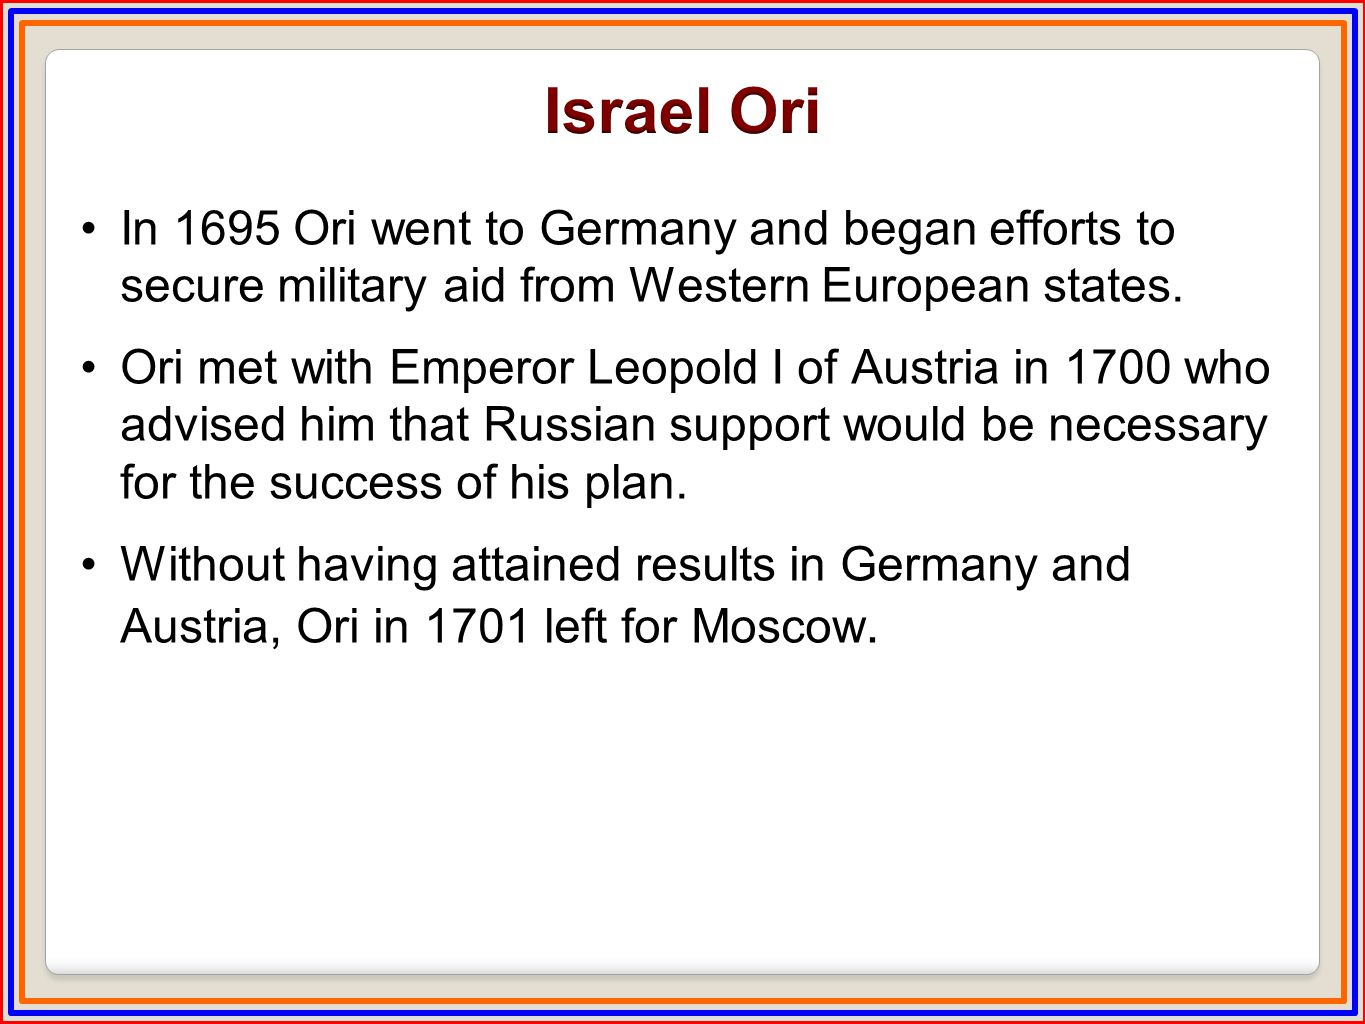 In 1695 Ori went to Germany and began efforts to secure military aid from Western European states.